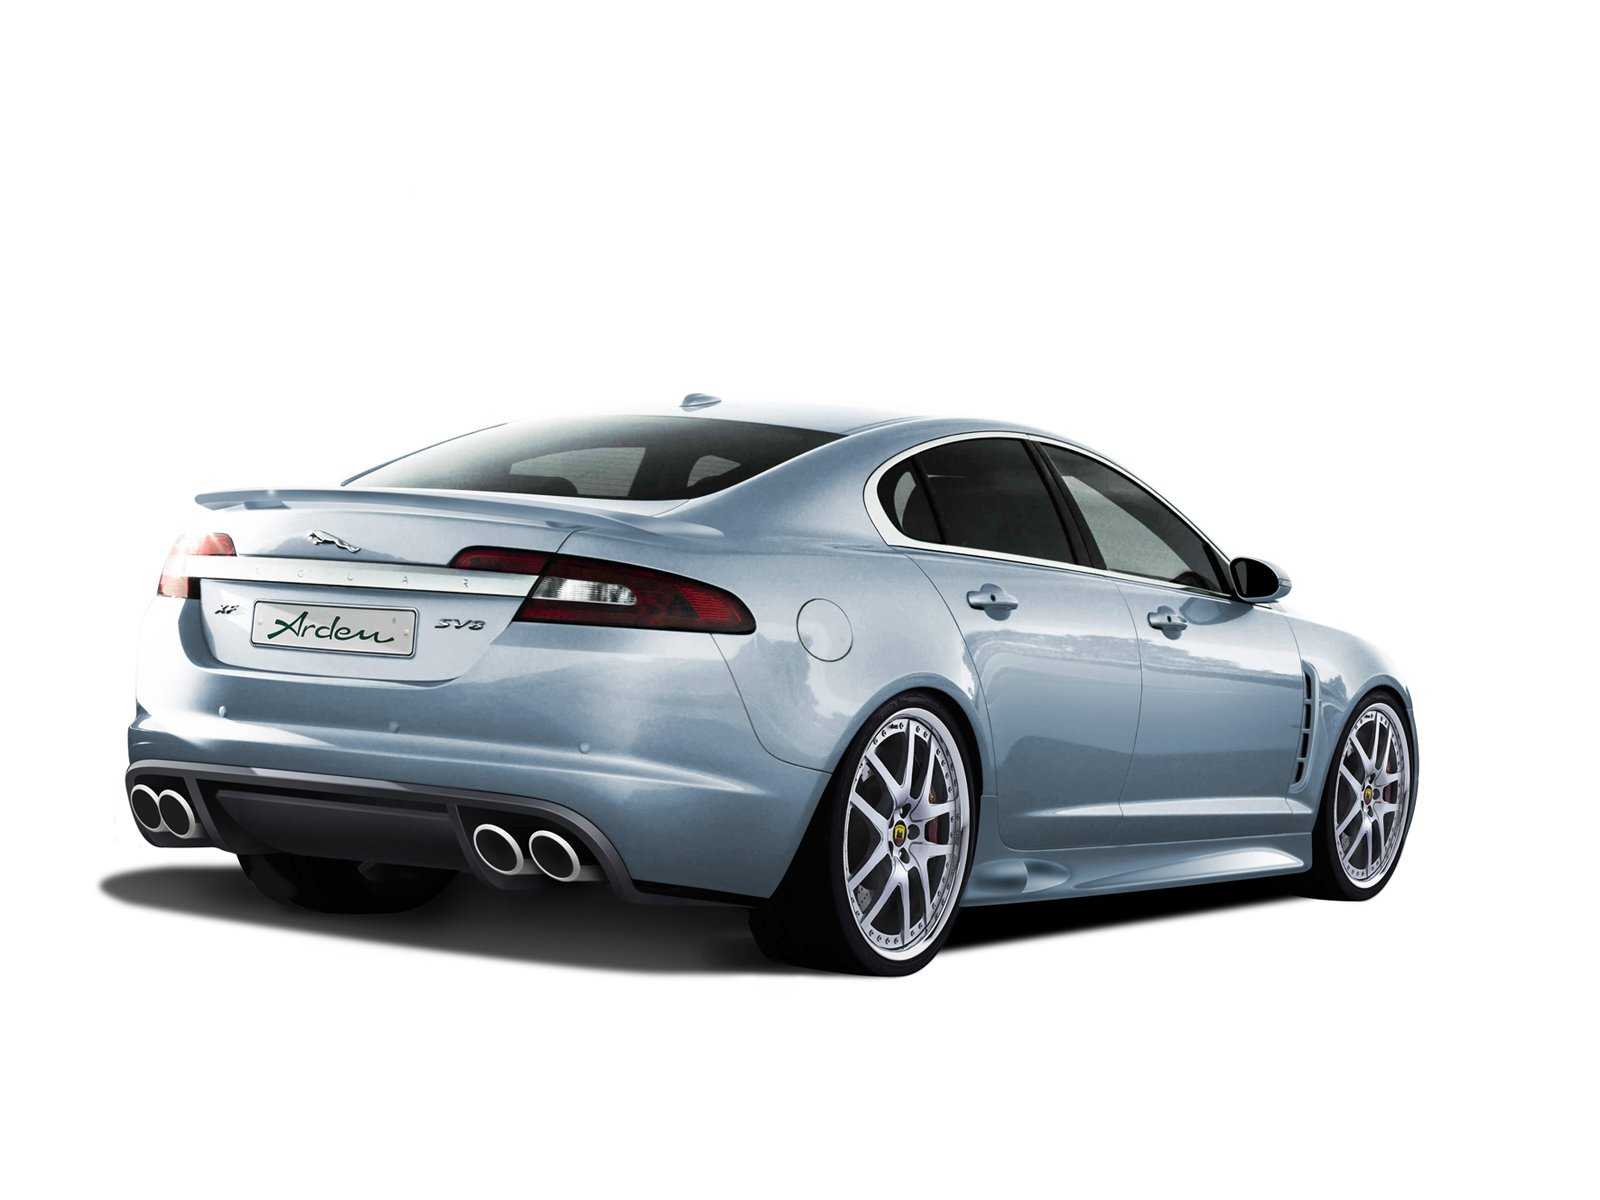 jaguar xf 2009 - photo #8